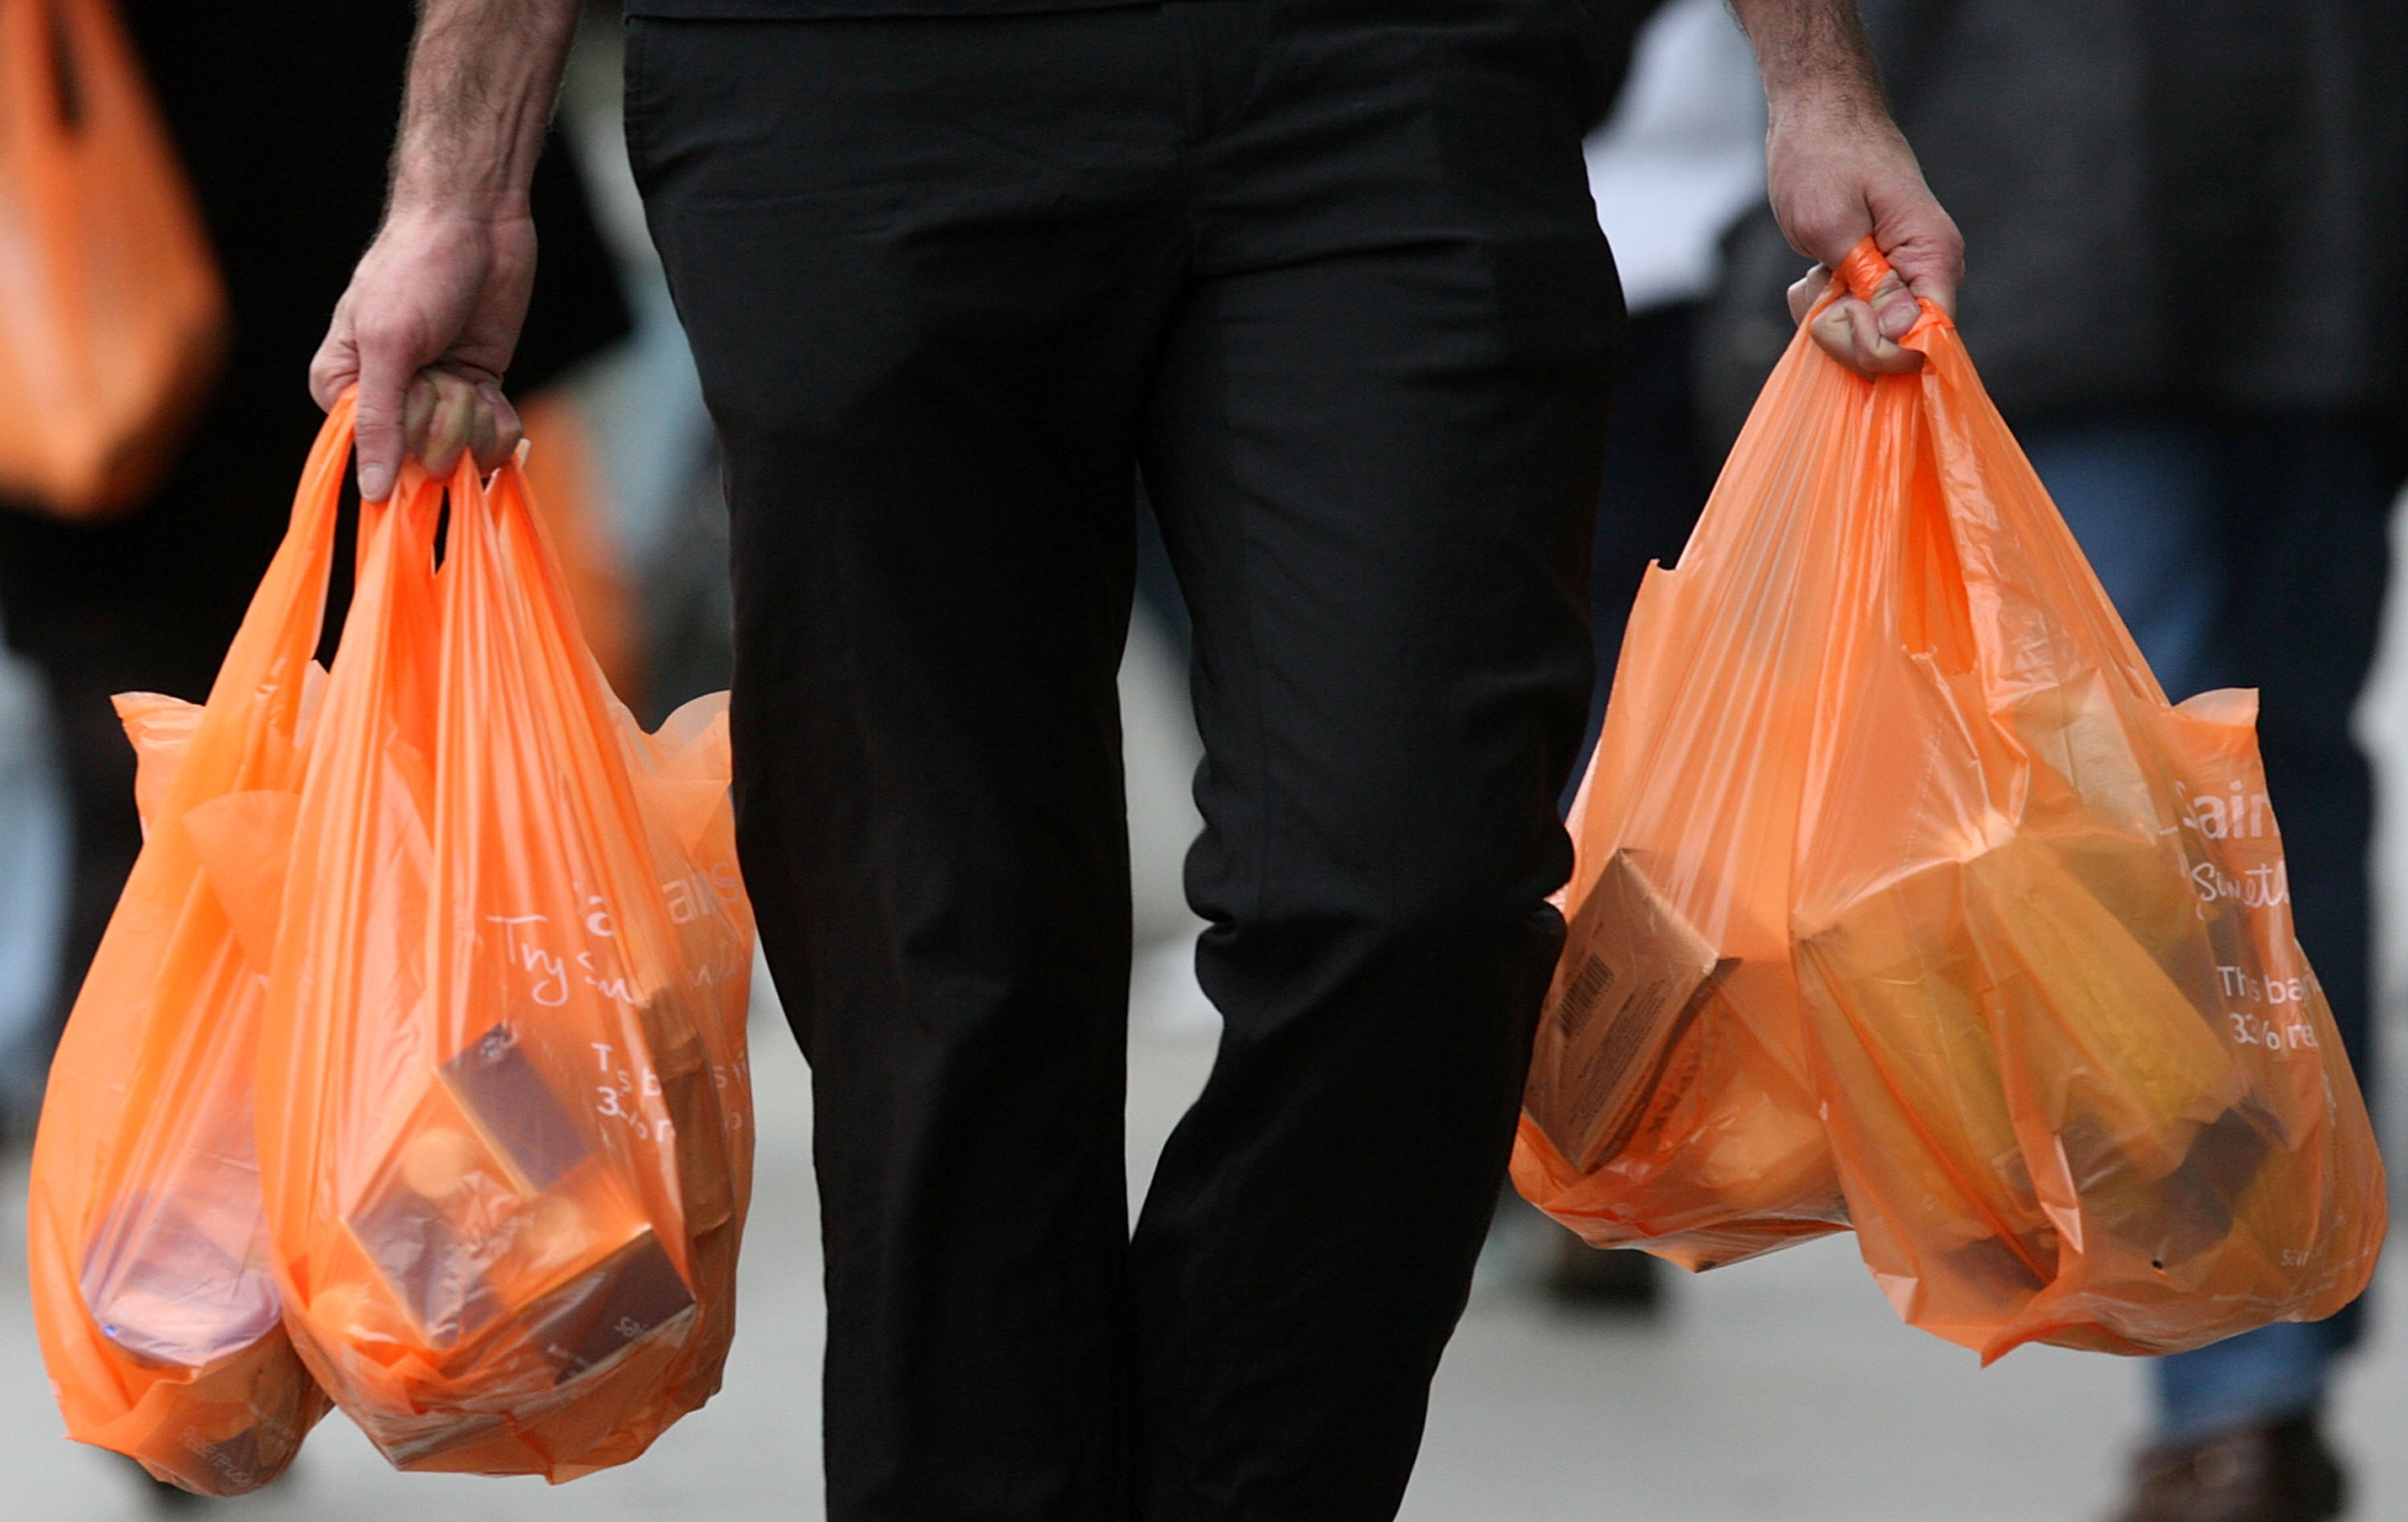 Grocery Store Prints Embarrassing Logos on Plastic Bags to Deter Customer Use